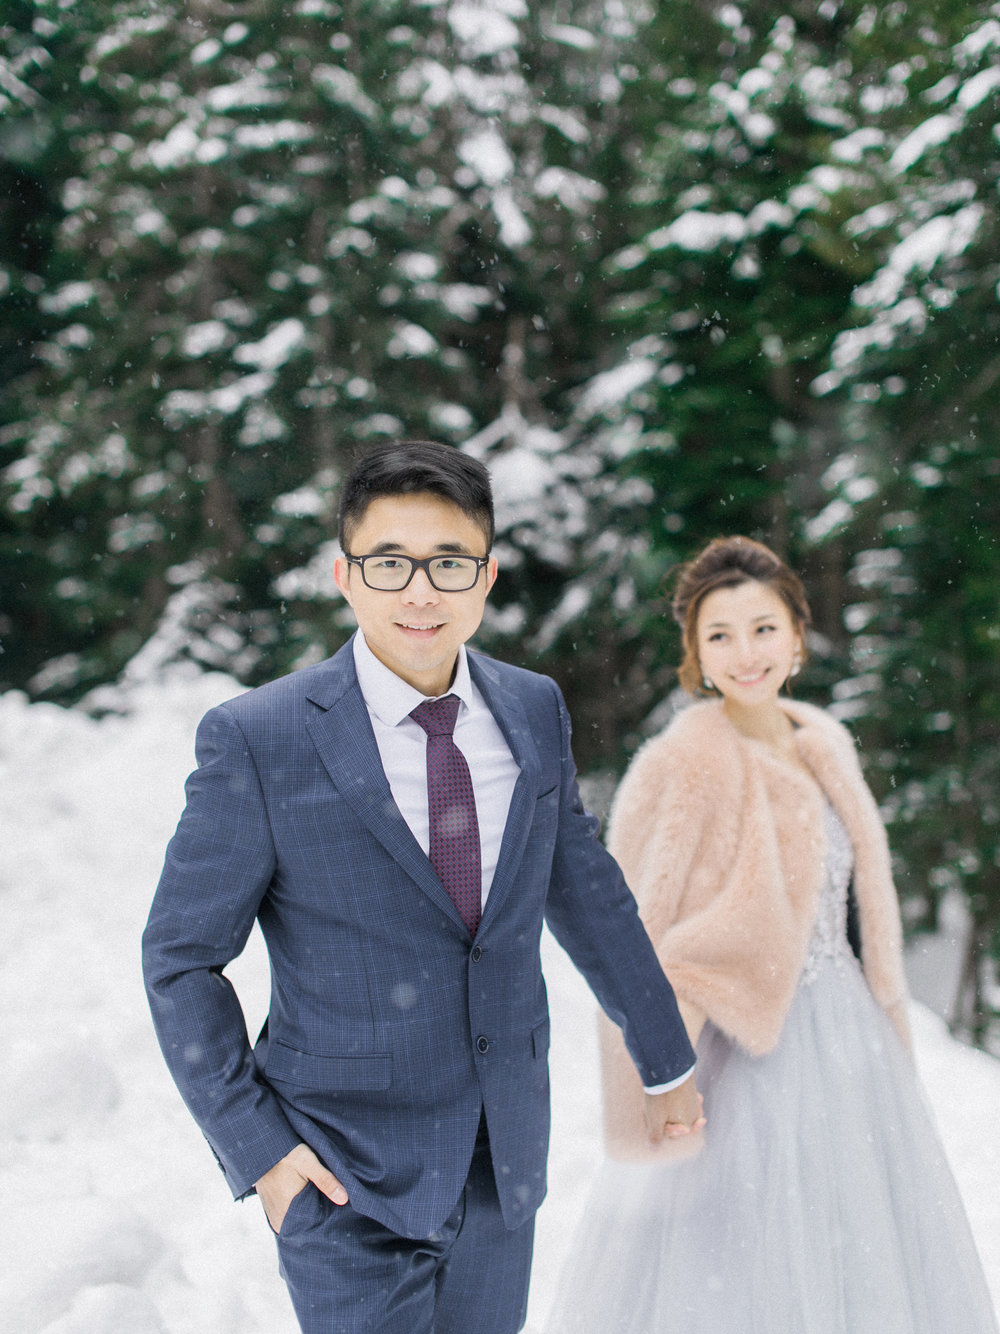 20170225LeslyJerryPreWedding-25 copy.jpg